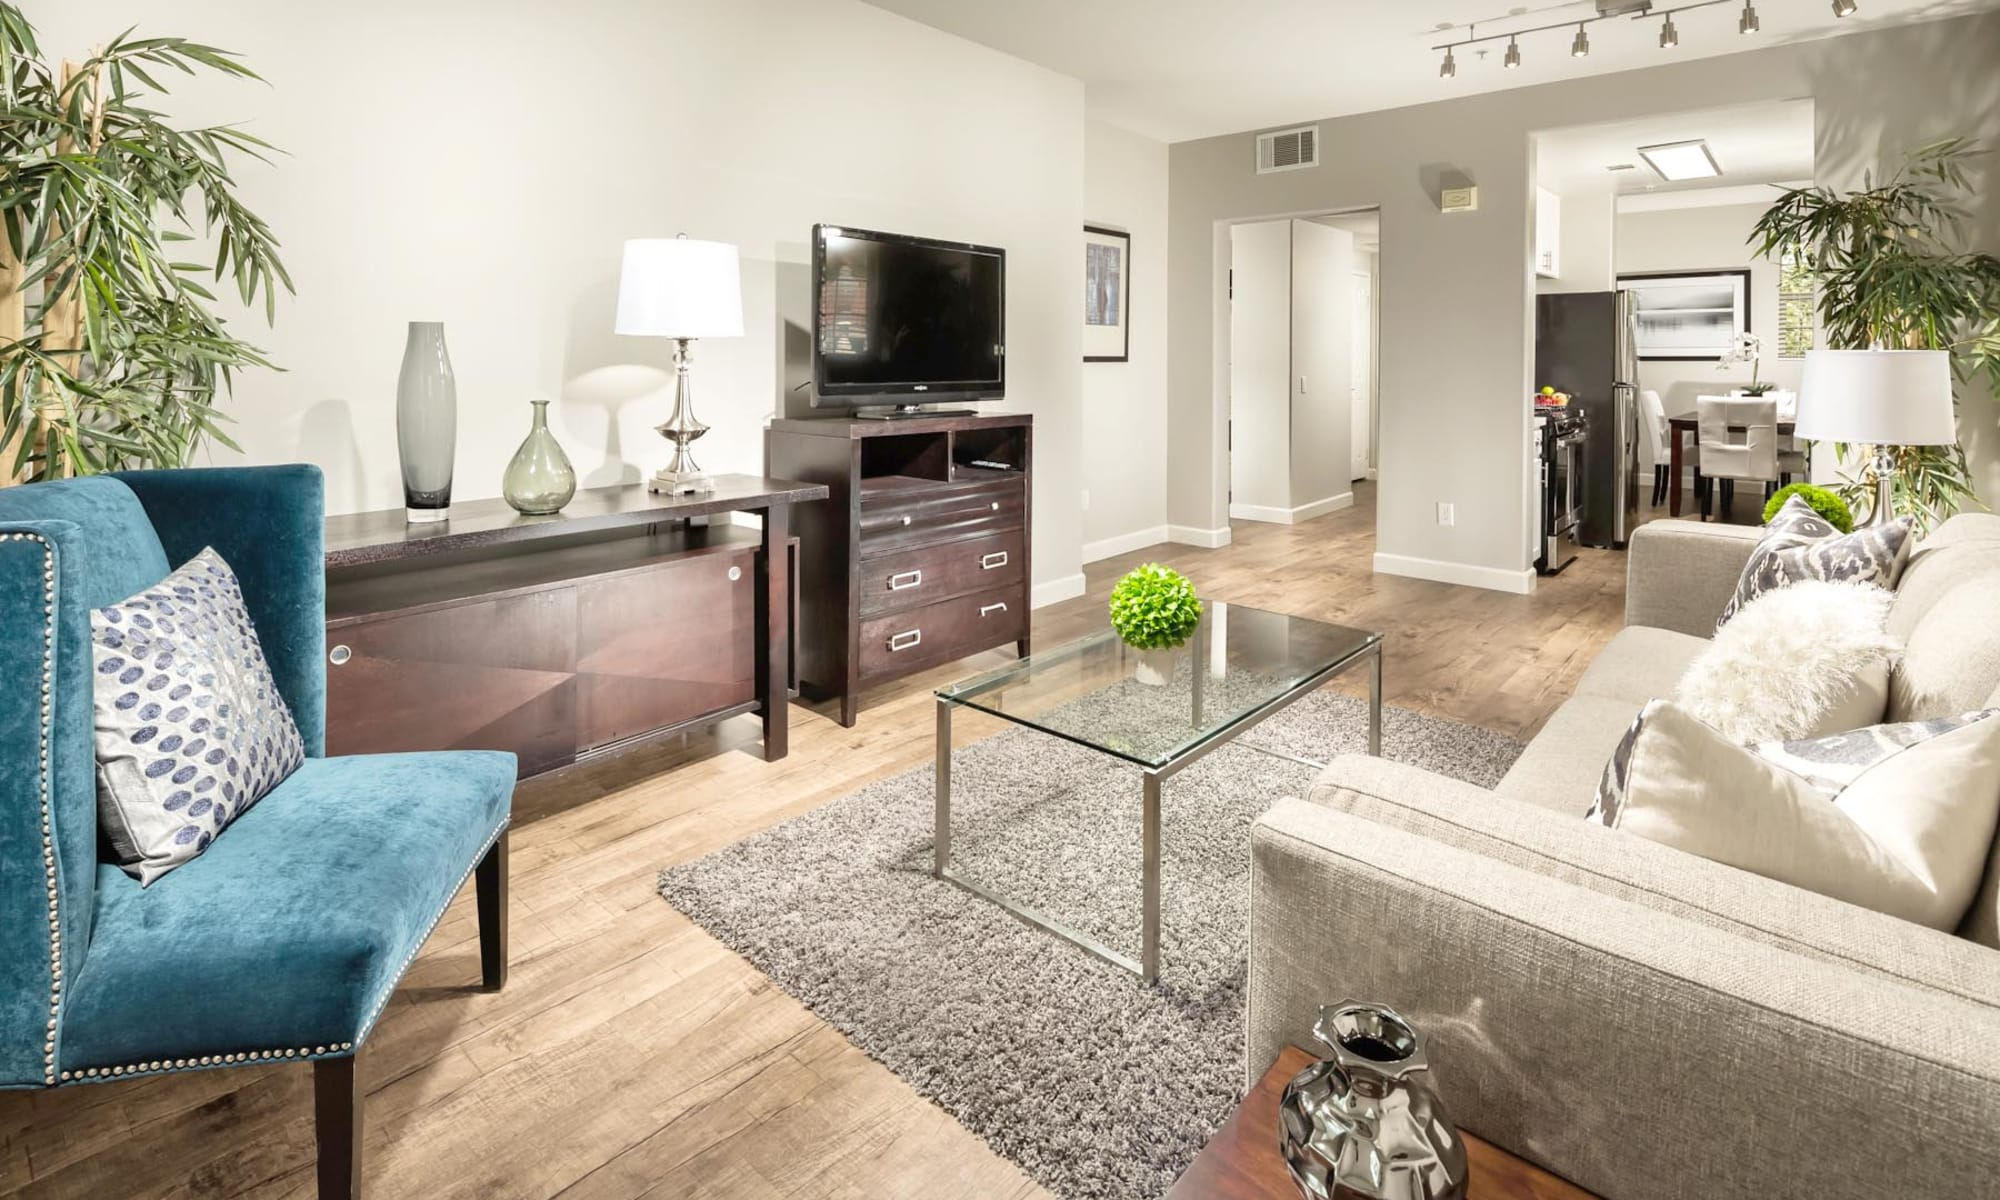 Beautiful hardwood flooring in a model home's living area at Mission Hills in Camarillo, California